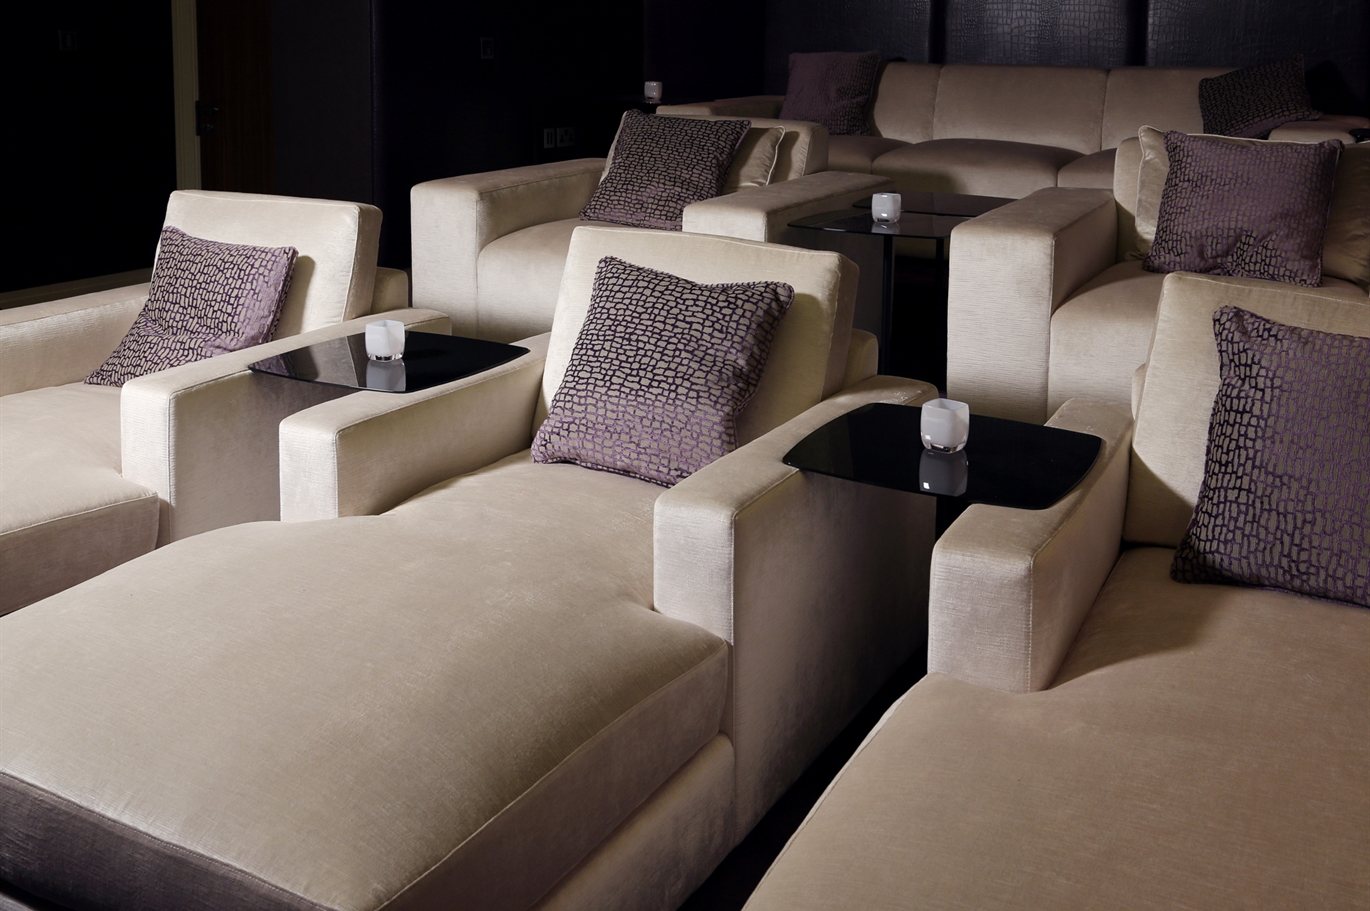 Cinema Room - The Sofa & Chair Company